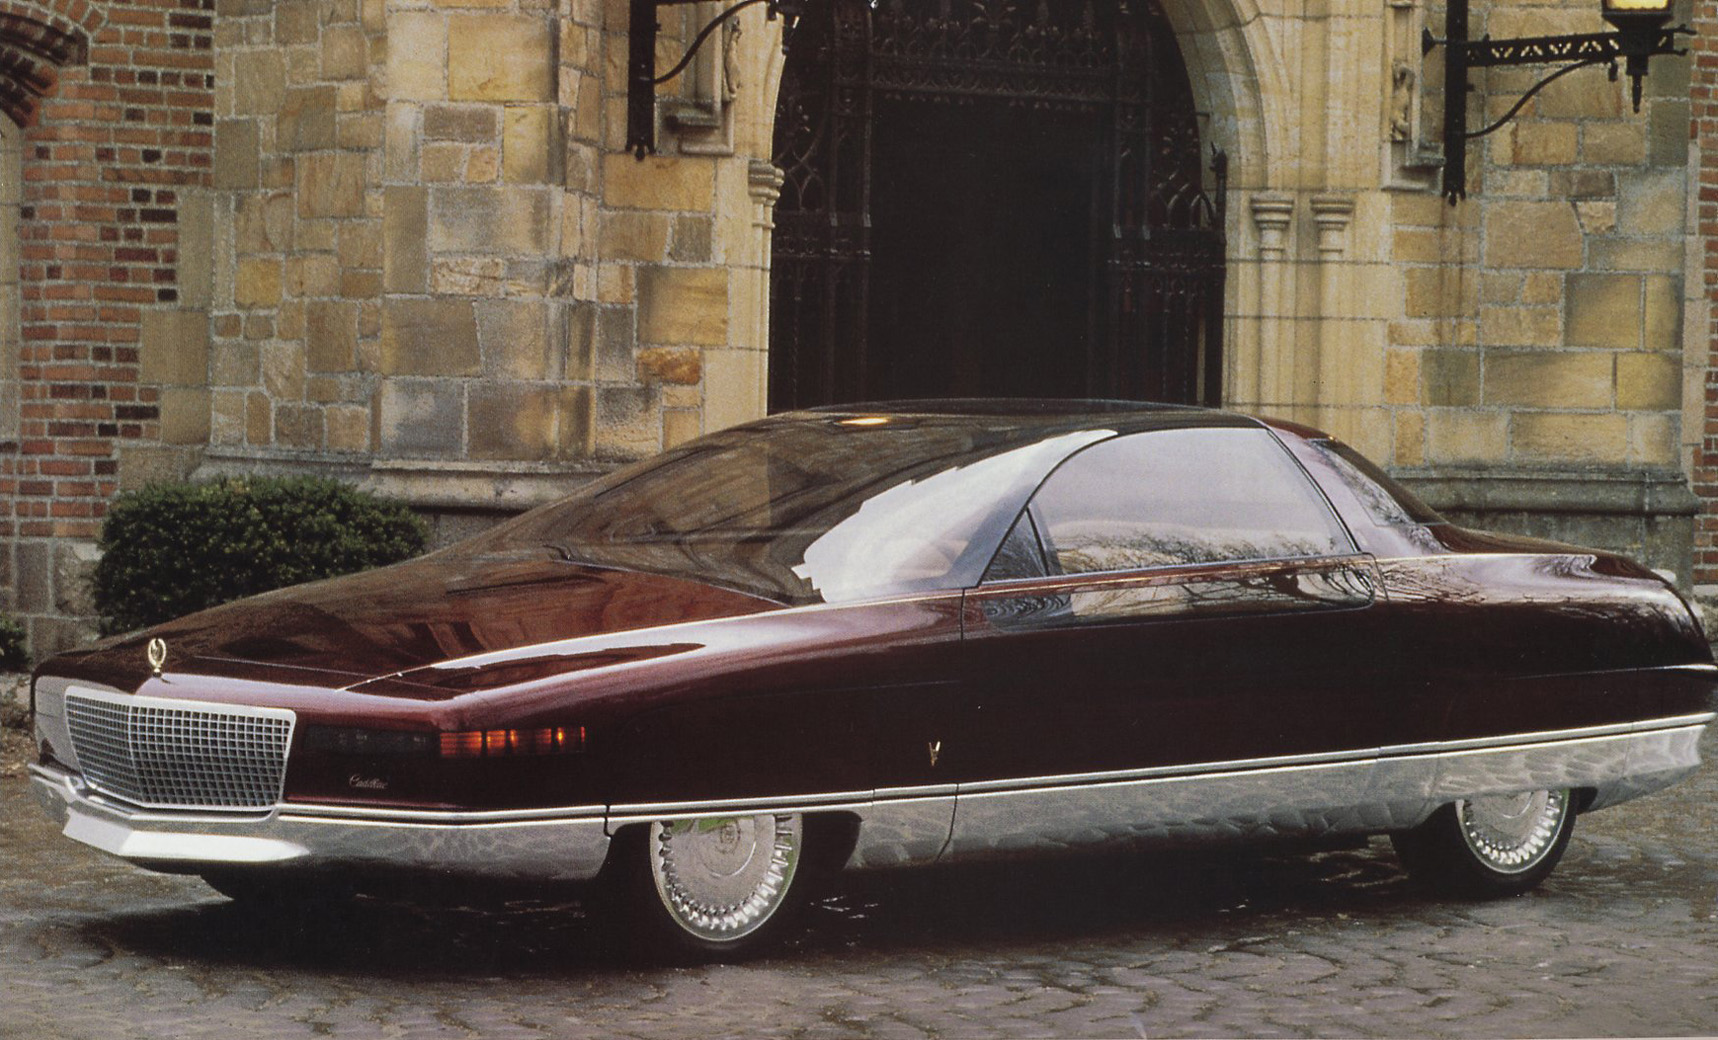 Cadillac solitaire photo - 4